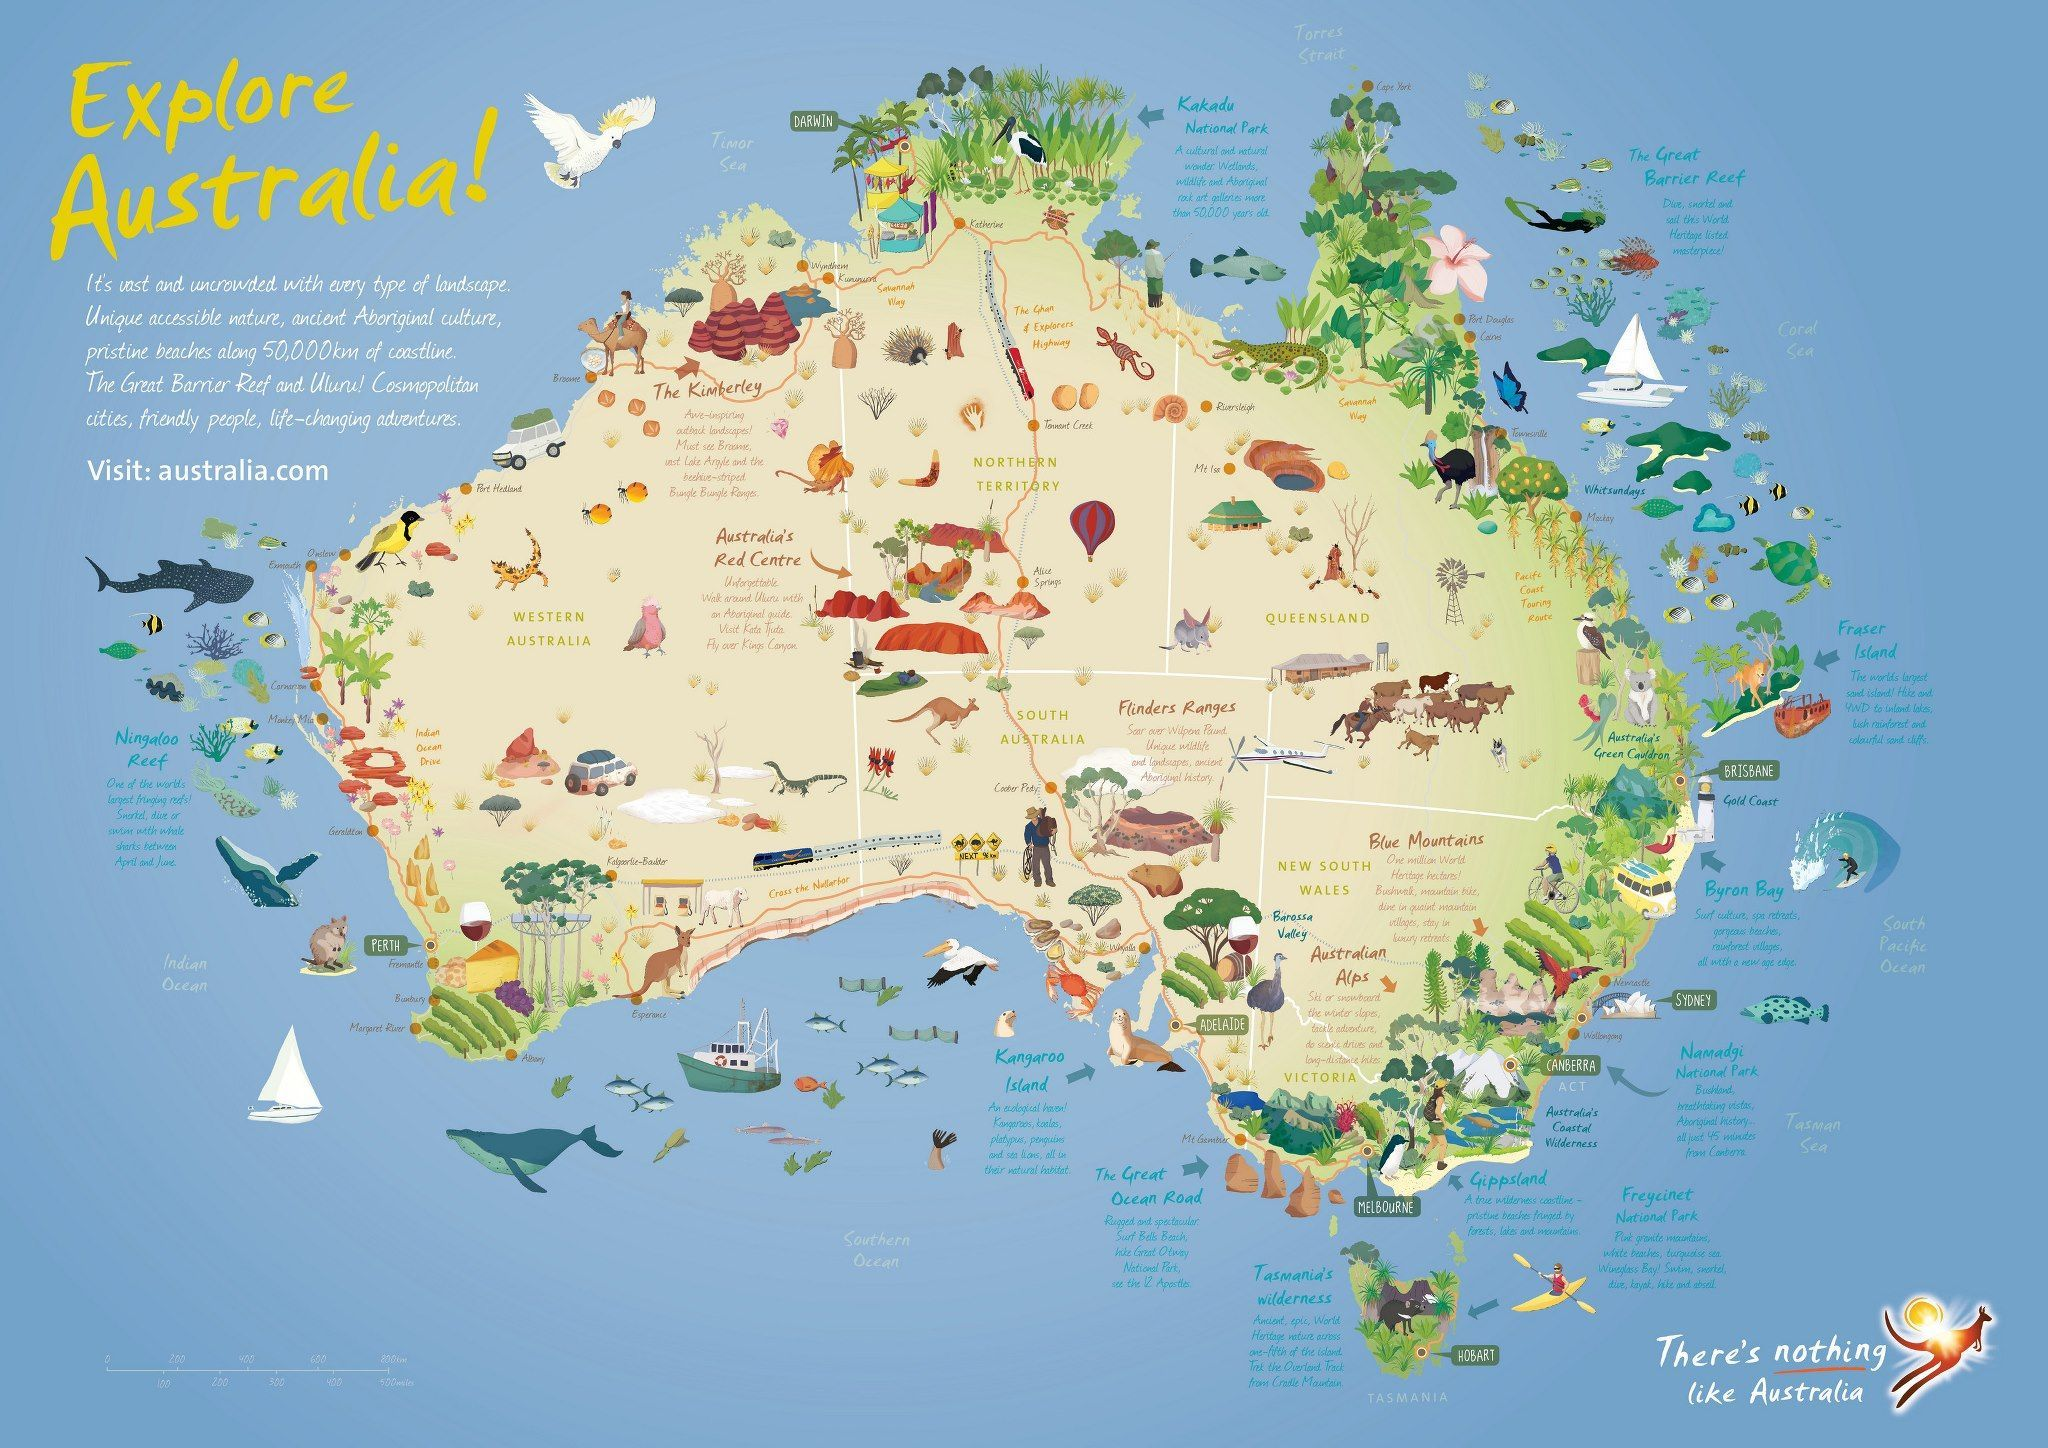 Australia Map Key.Australia Travel Map Showing Key Features Attractions On The